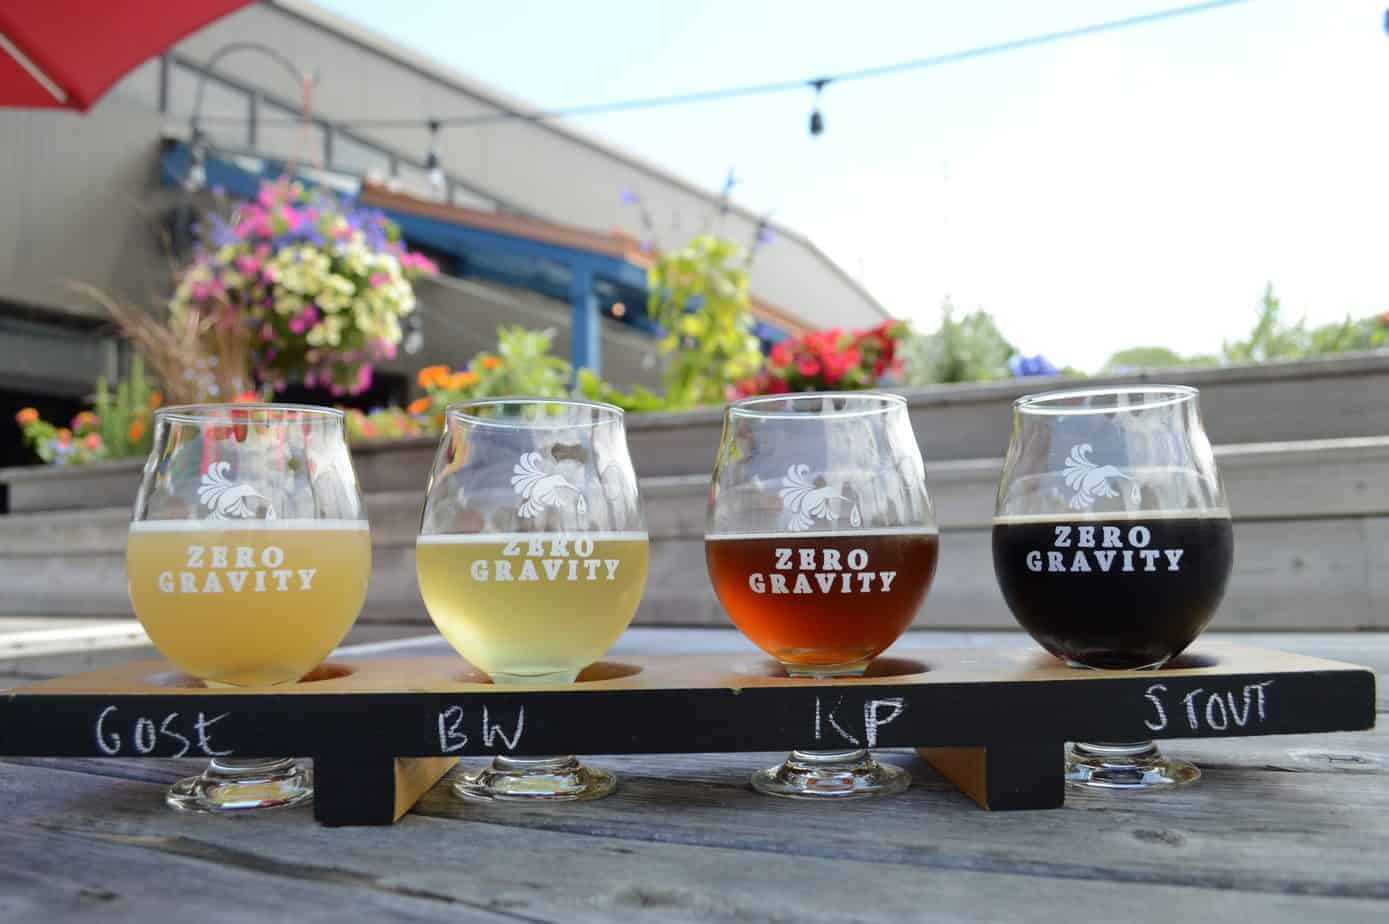 burlington VT breweries header image - flight of four beers ranging from light ale to a dark porter